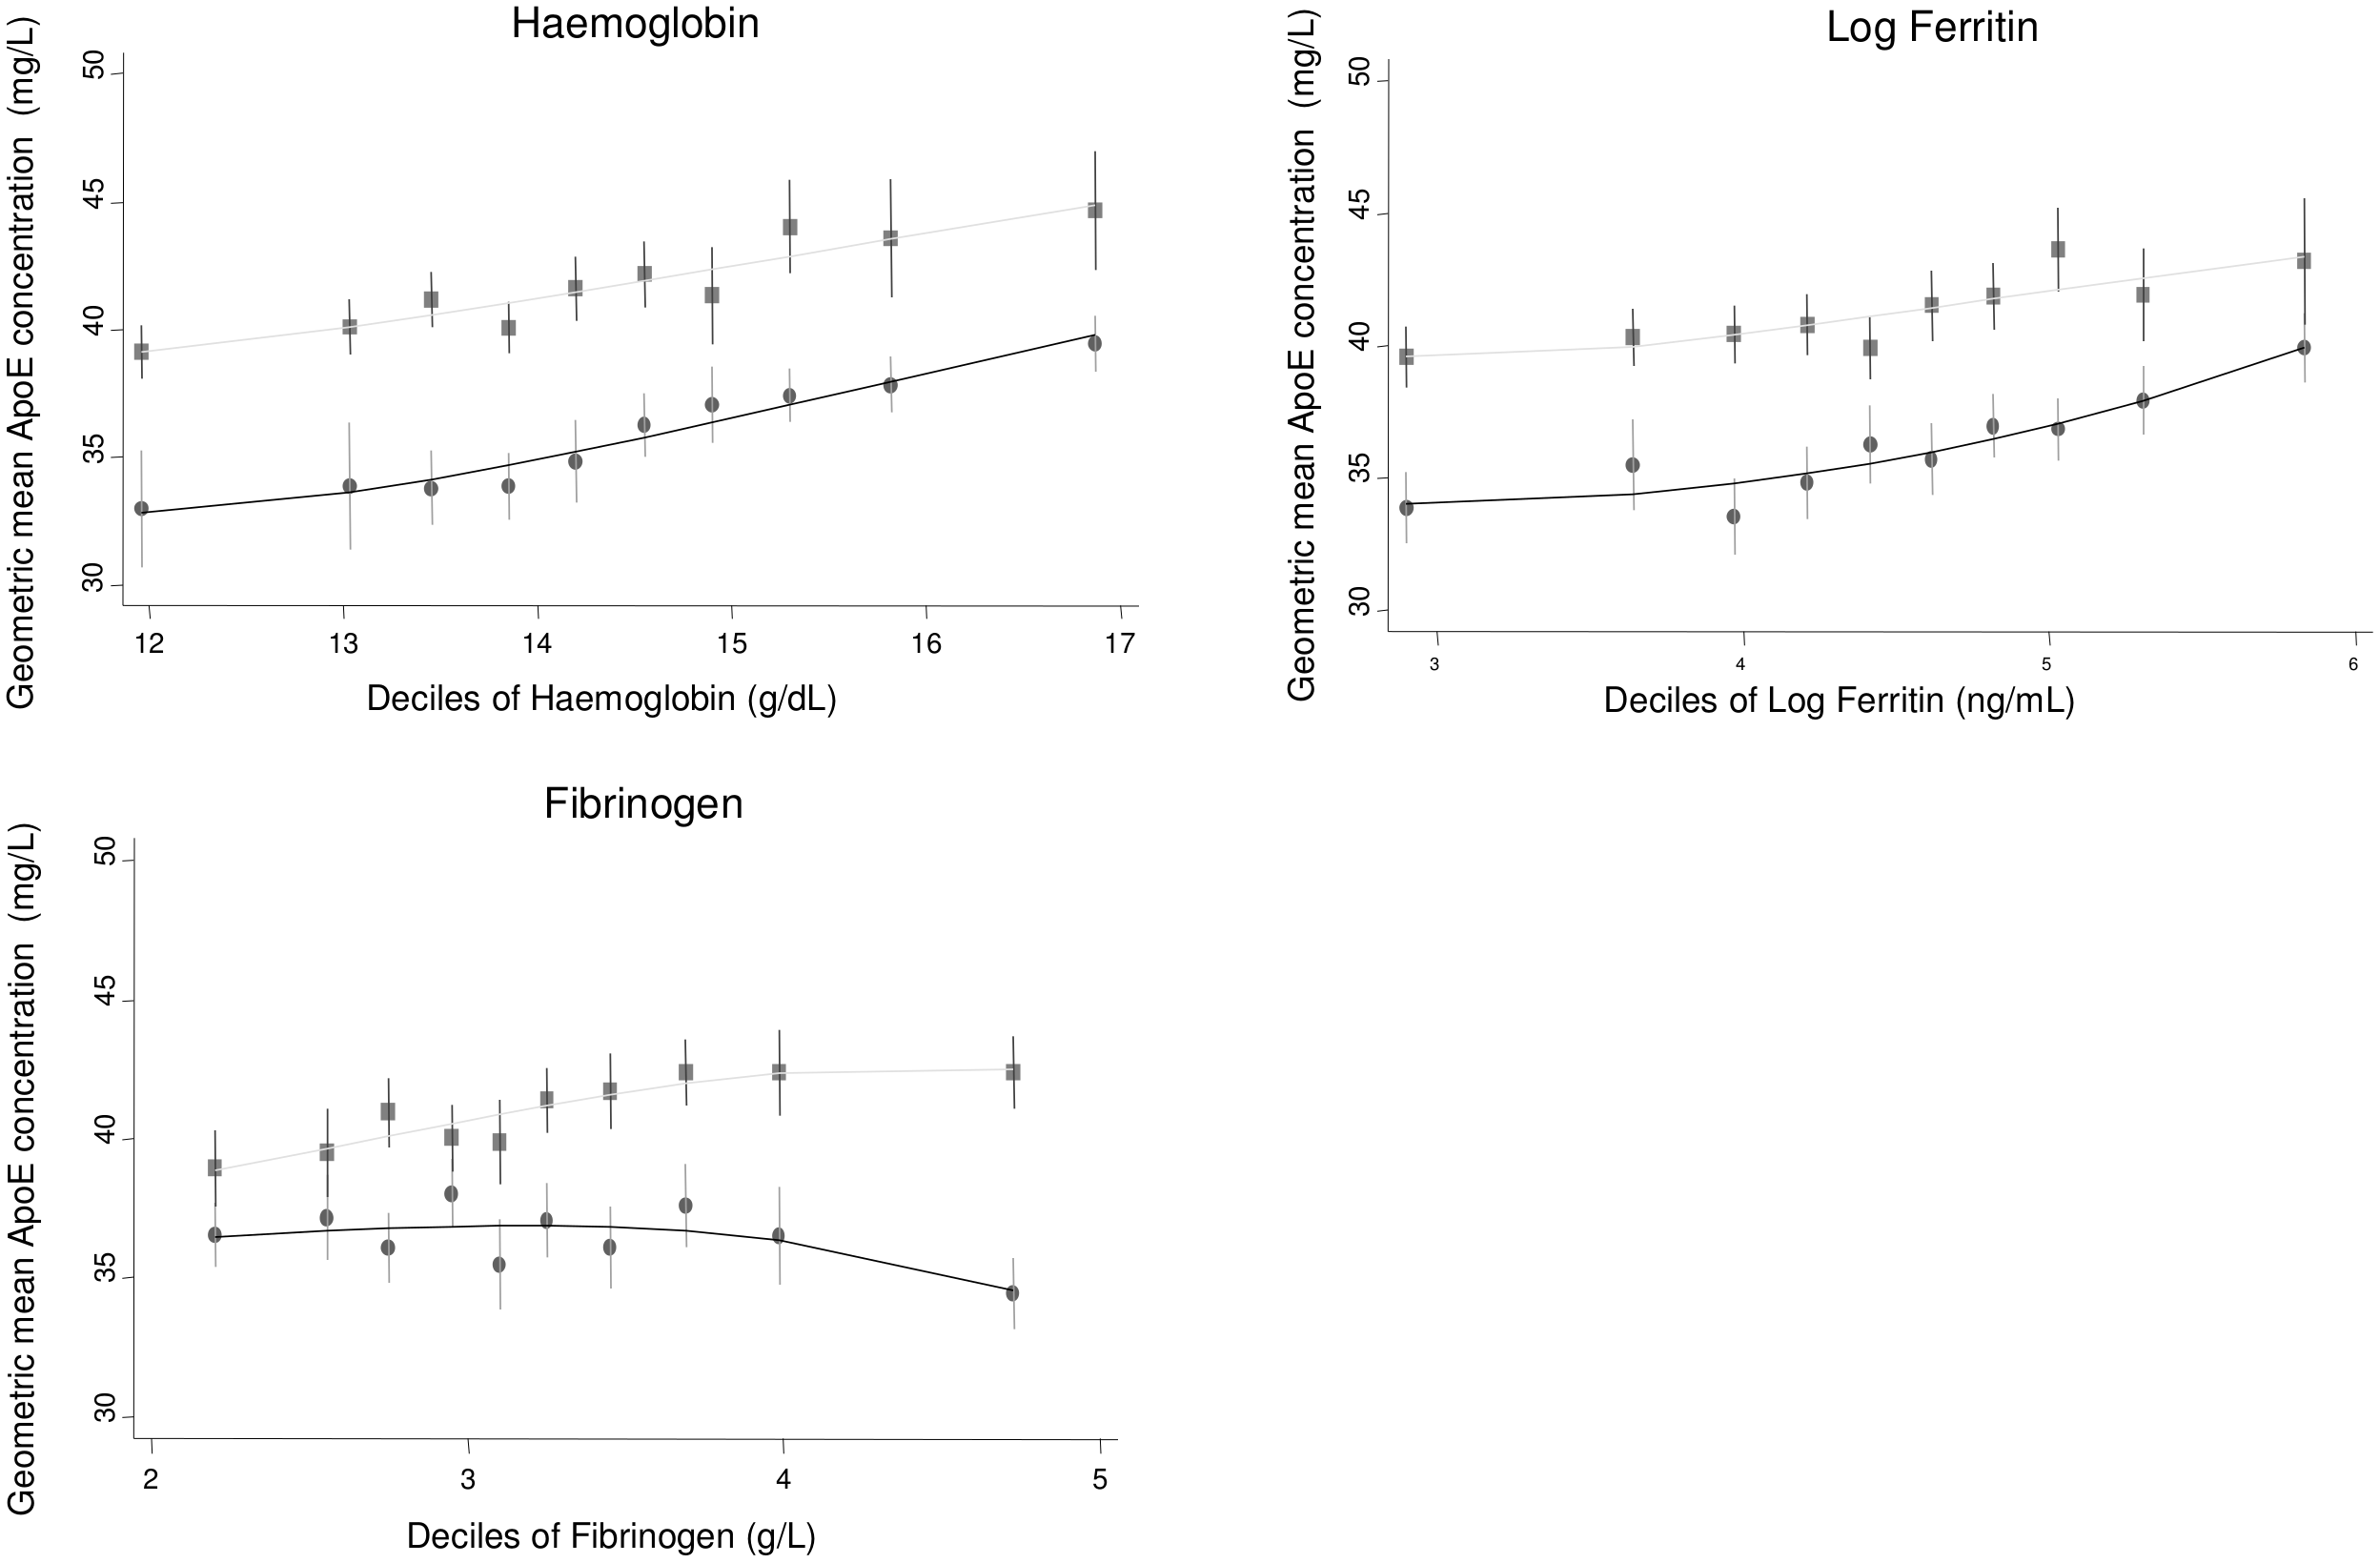 Cross-sectional association between geometric mean of ApoE concentration and haemoglobin, ferritin, and fibrinogen measured in ELSA, by gender.